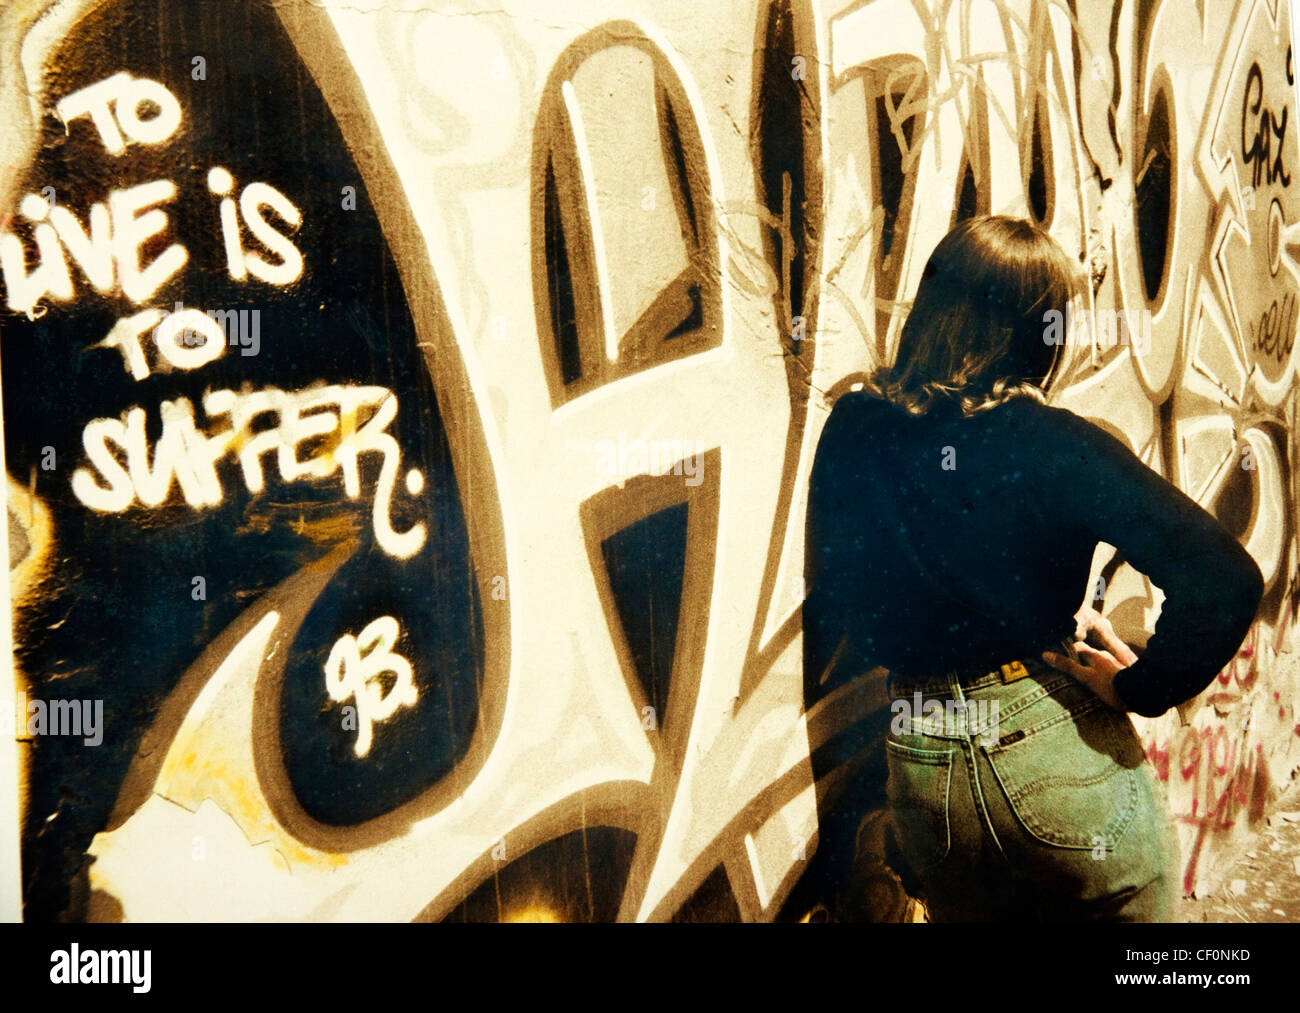 Graffiti at Trafford Park, Manchester, Lancashire, England, UK with a teenager - Stock Image